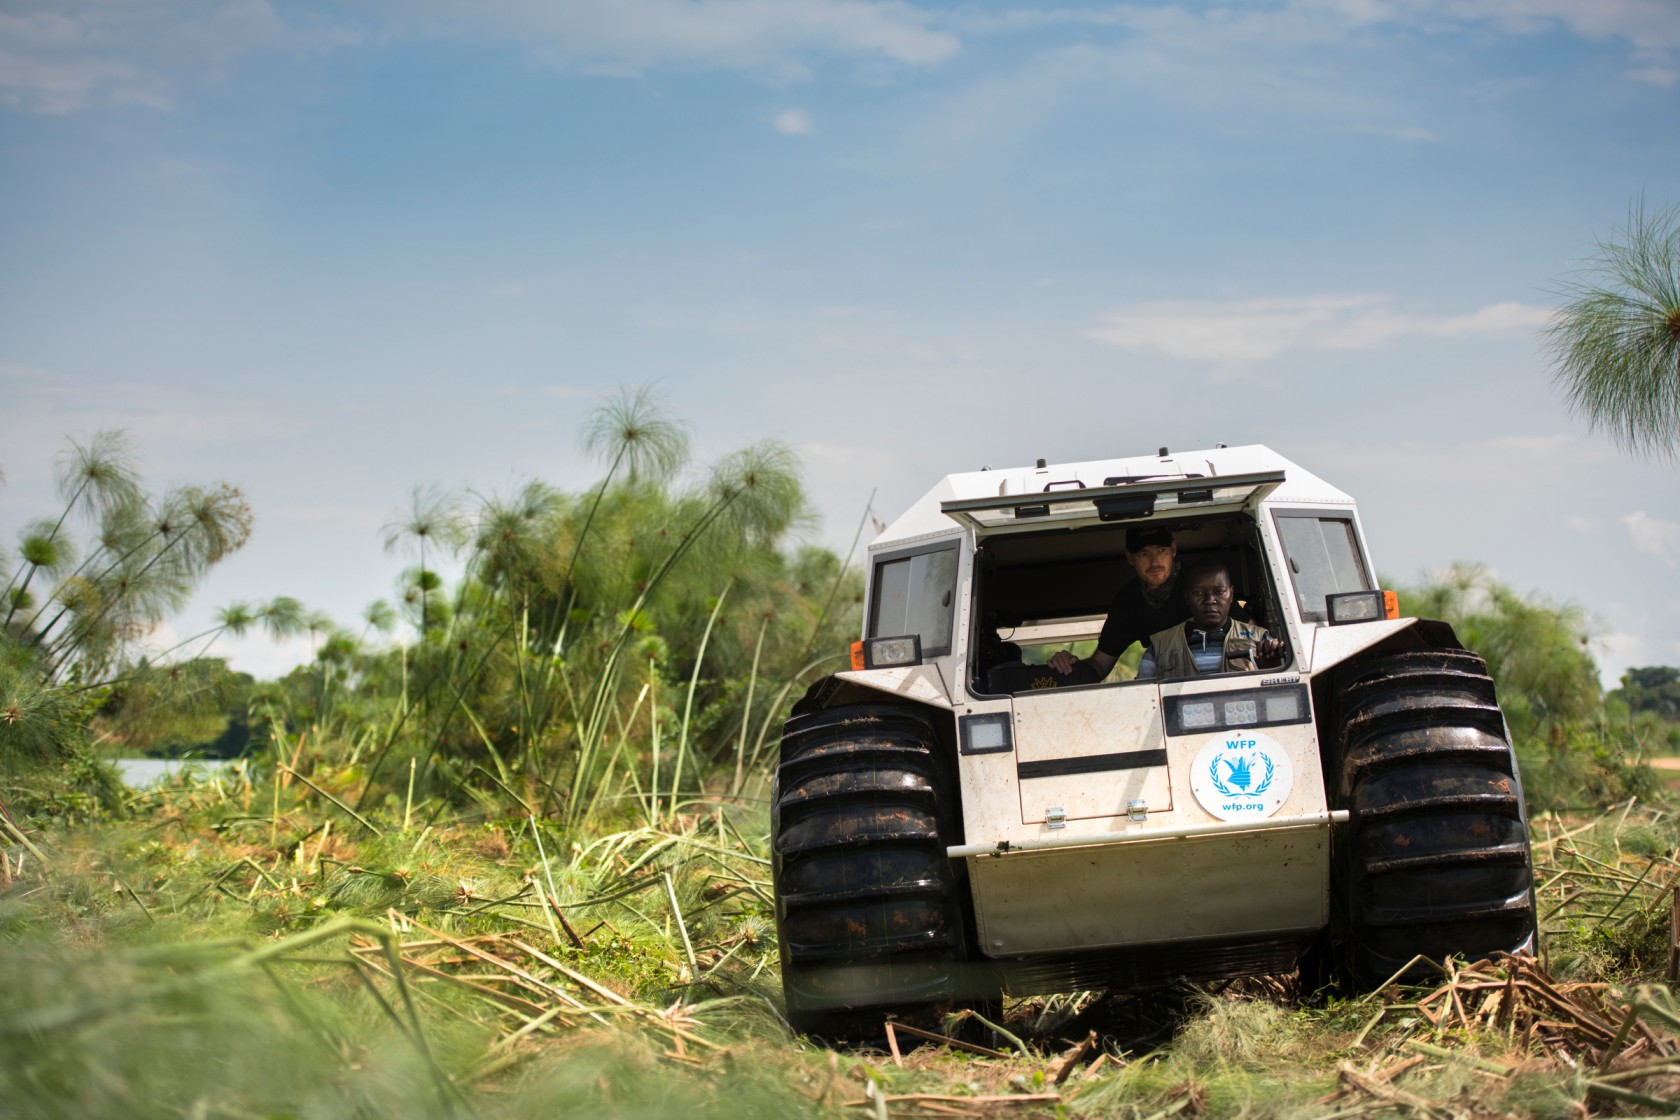 A Sherp traveling through swamp lands to save lives